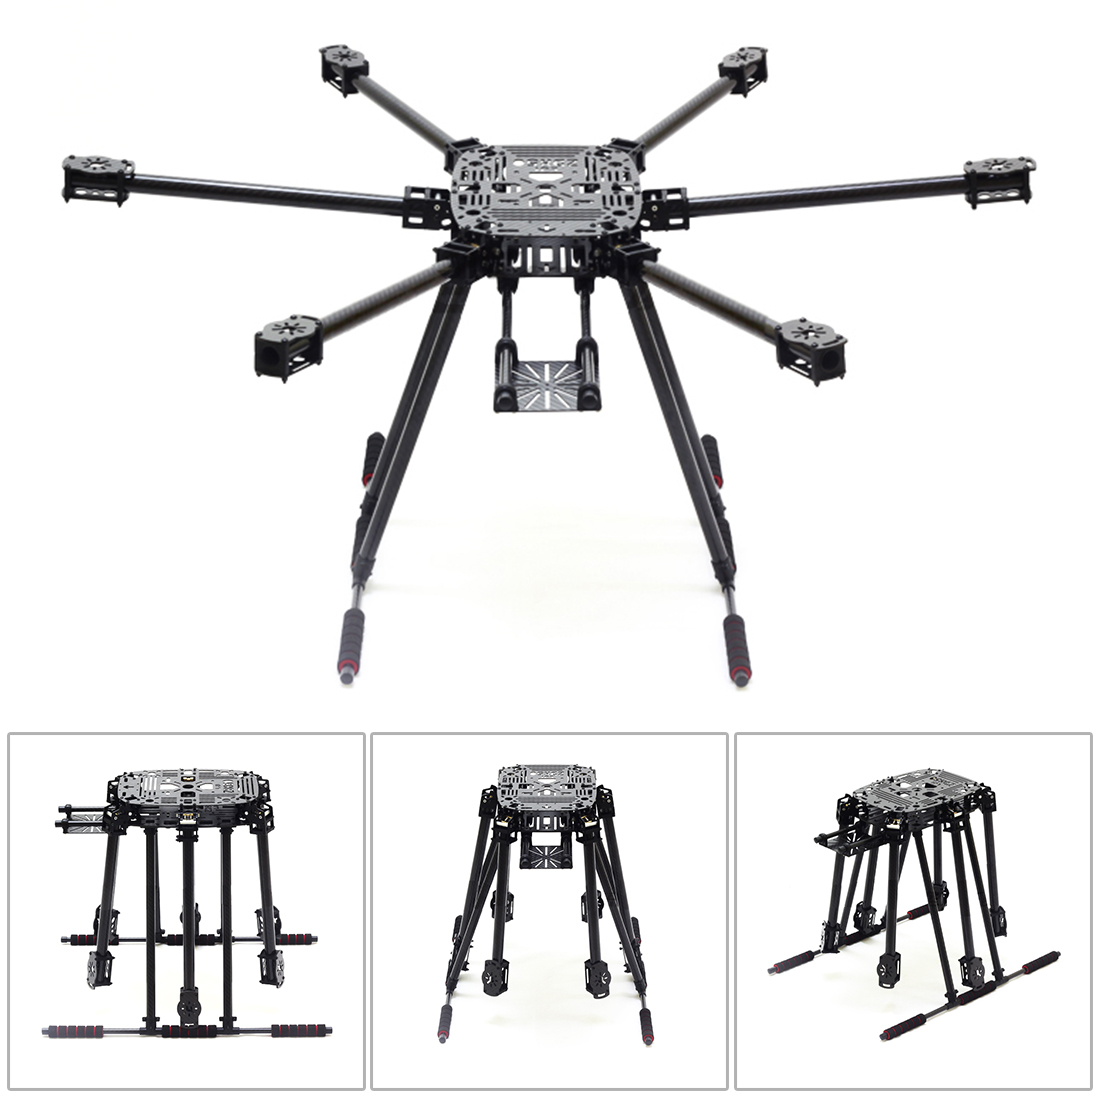 ZD850 Full Carbon Fiber ZD 850 Frame Kit with Foldable Arm Unflodable Landing Gear for FPV DIY Aircraft Hexacopter zd850 full carbon fiber frame kit with unflodable landing gear foldable arm 6 axle hub set for diy fpv aircraft hexacopter